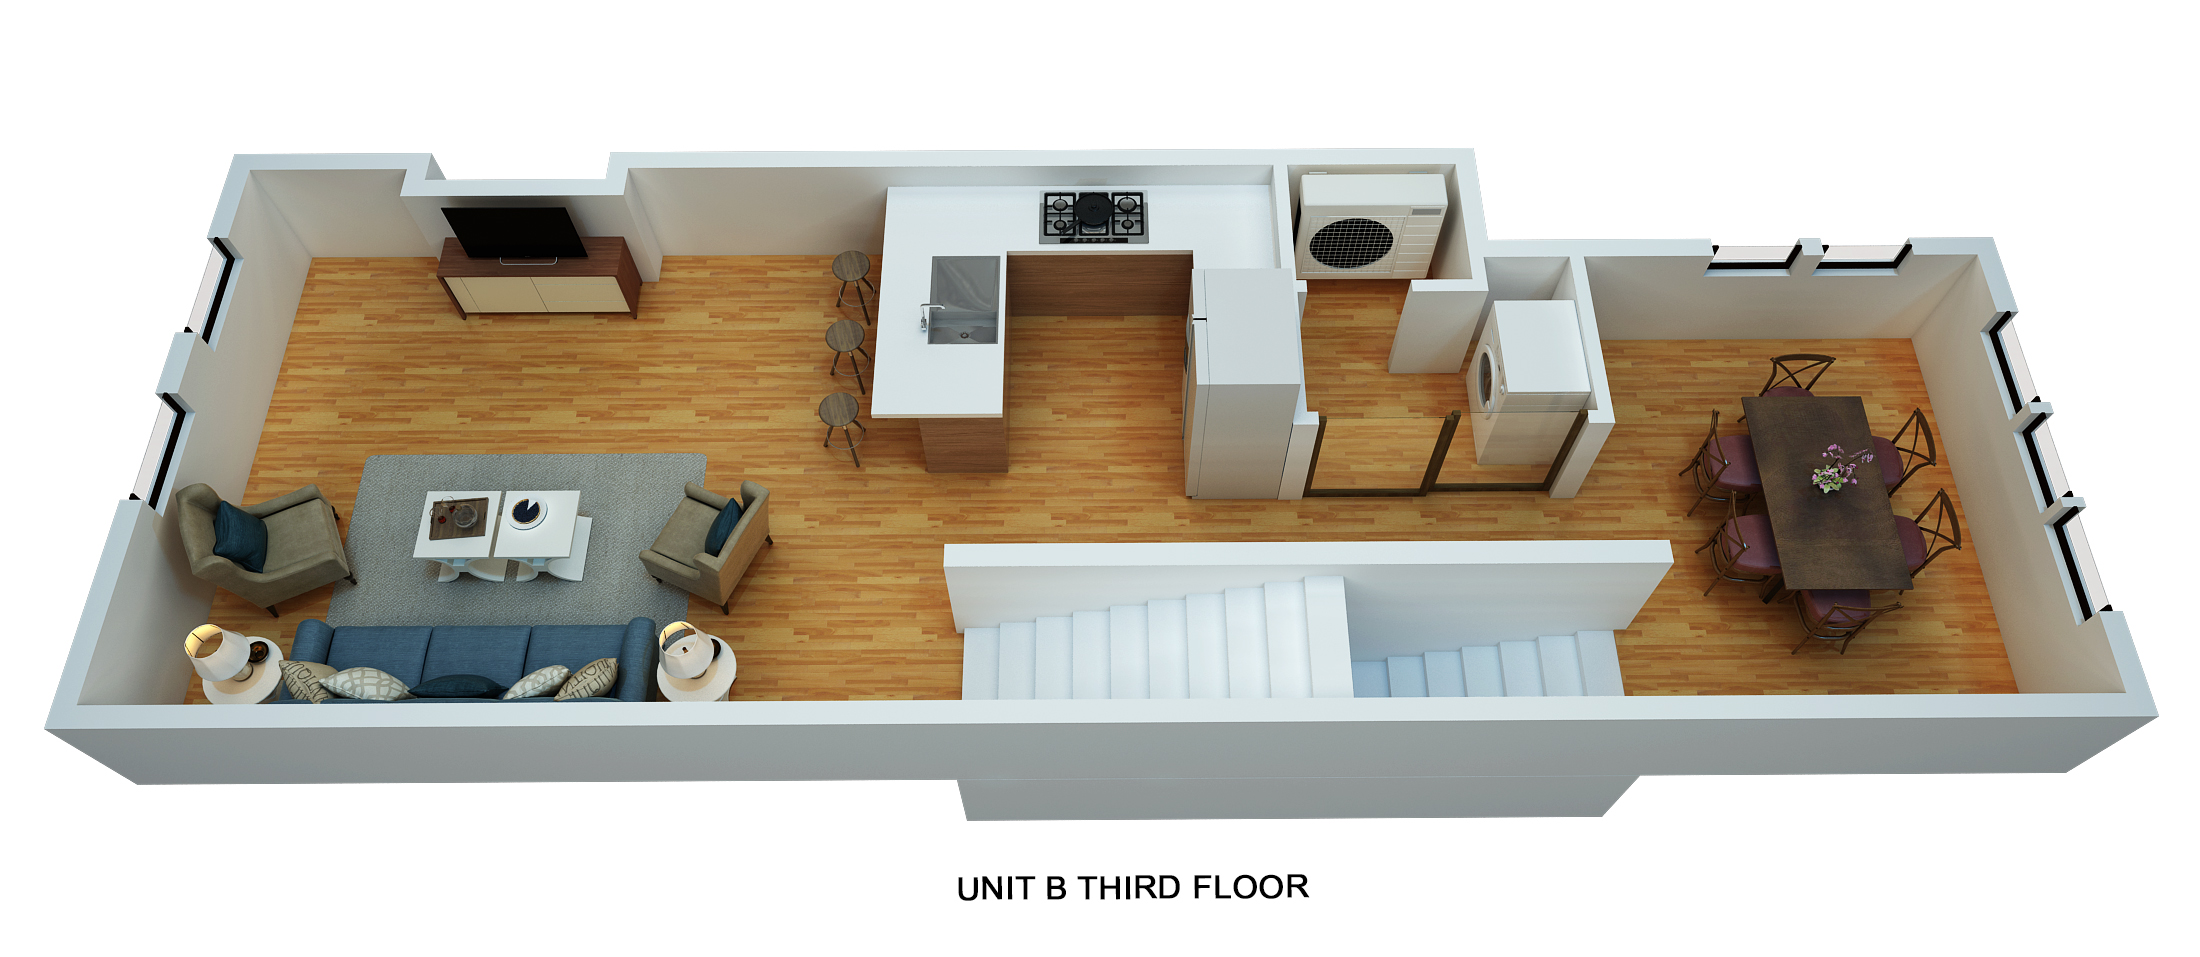 4218-ThirdfloorPlan.jpg